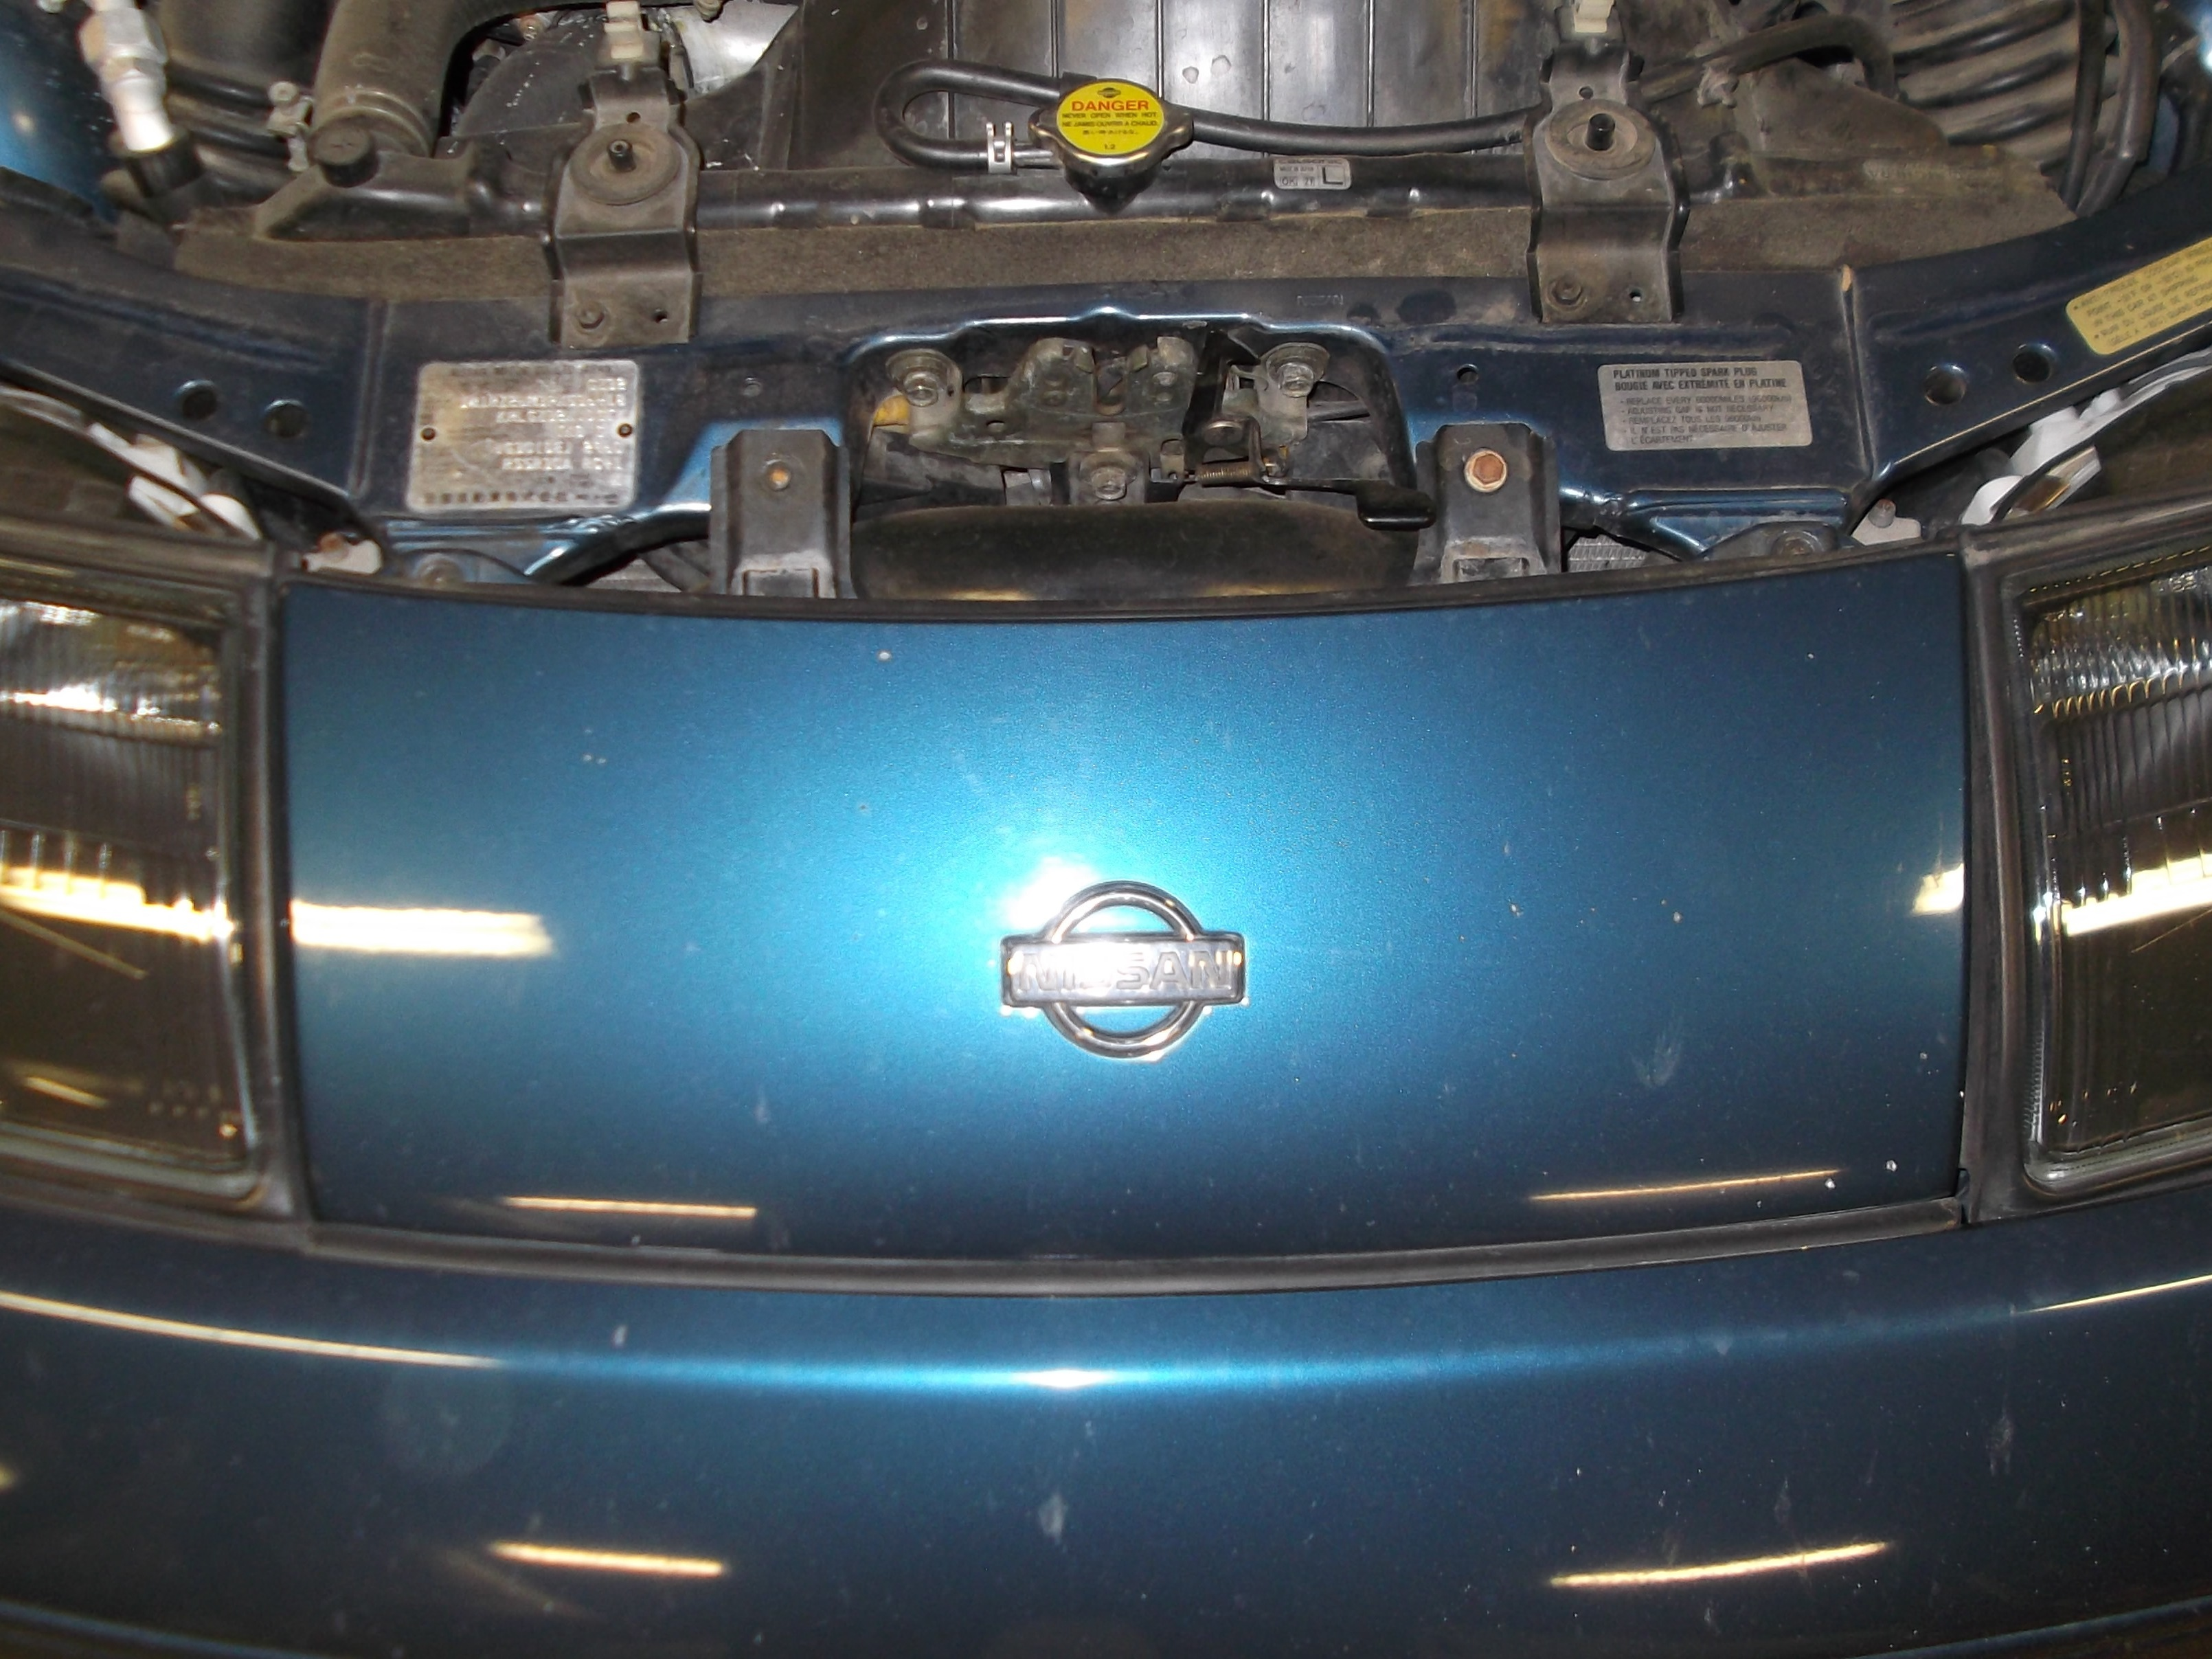 Nissan Repair Ifixit 2011 Altima Fuel Filter Air